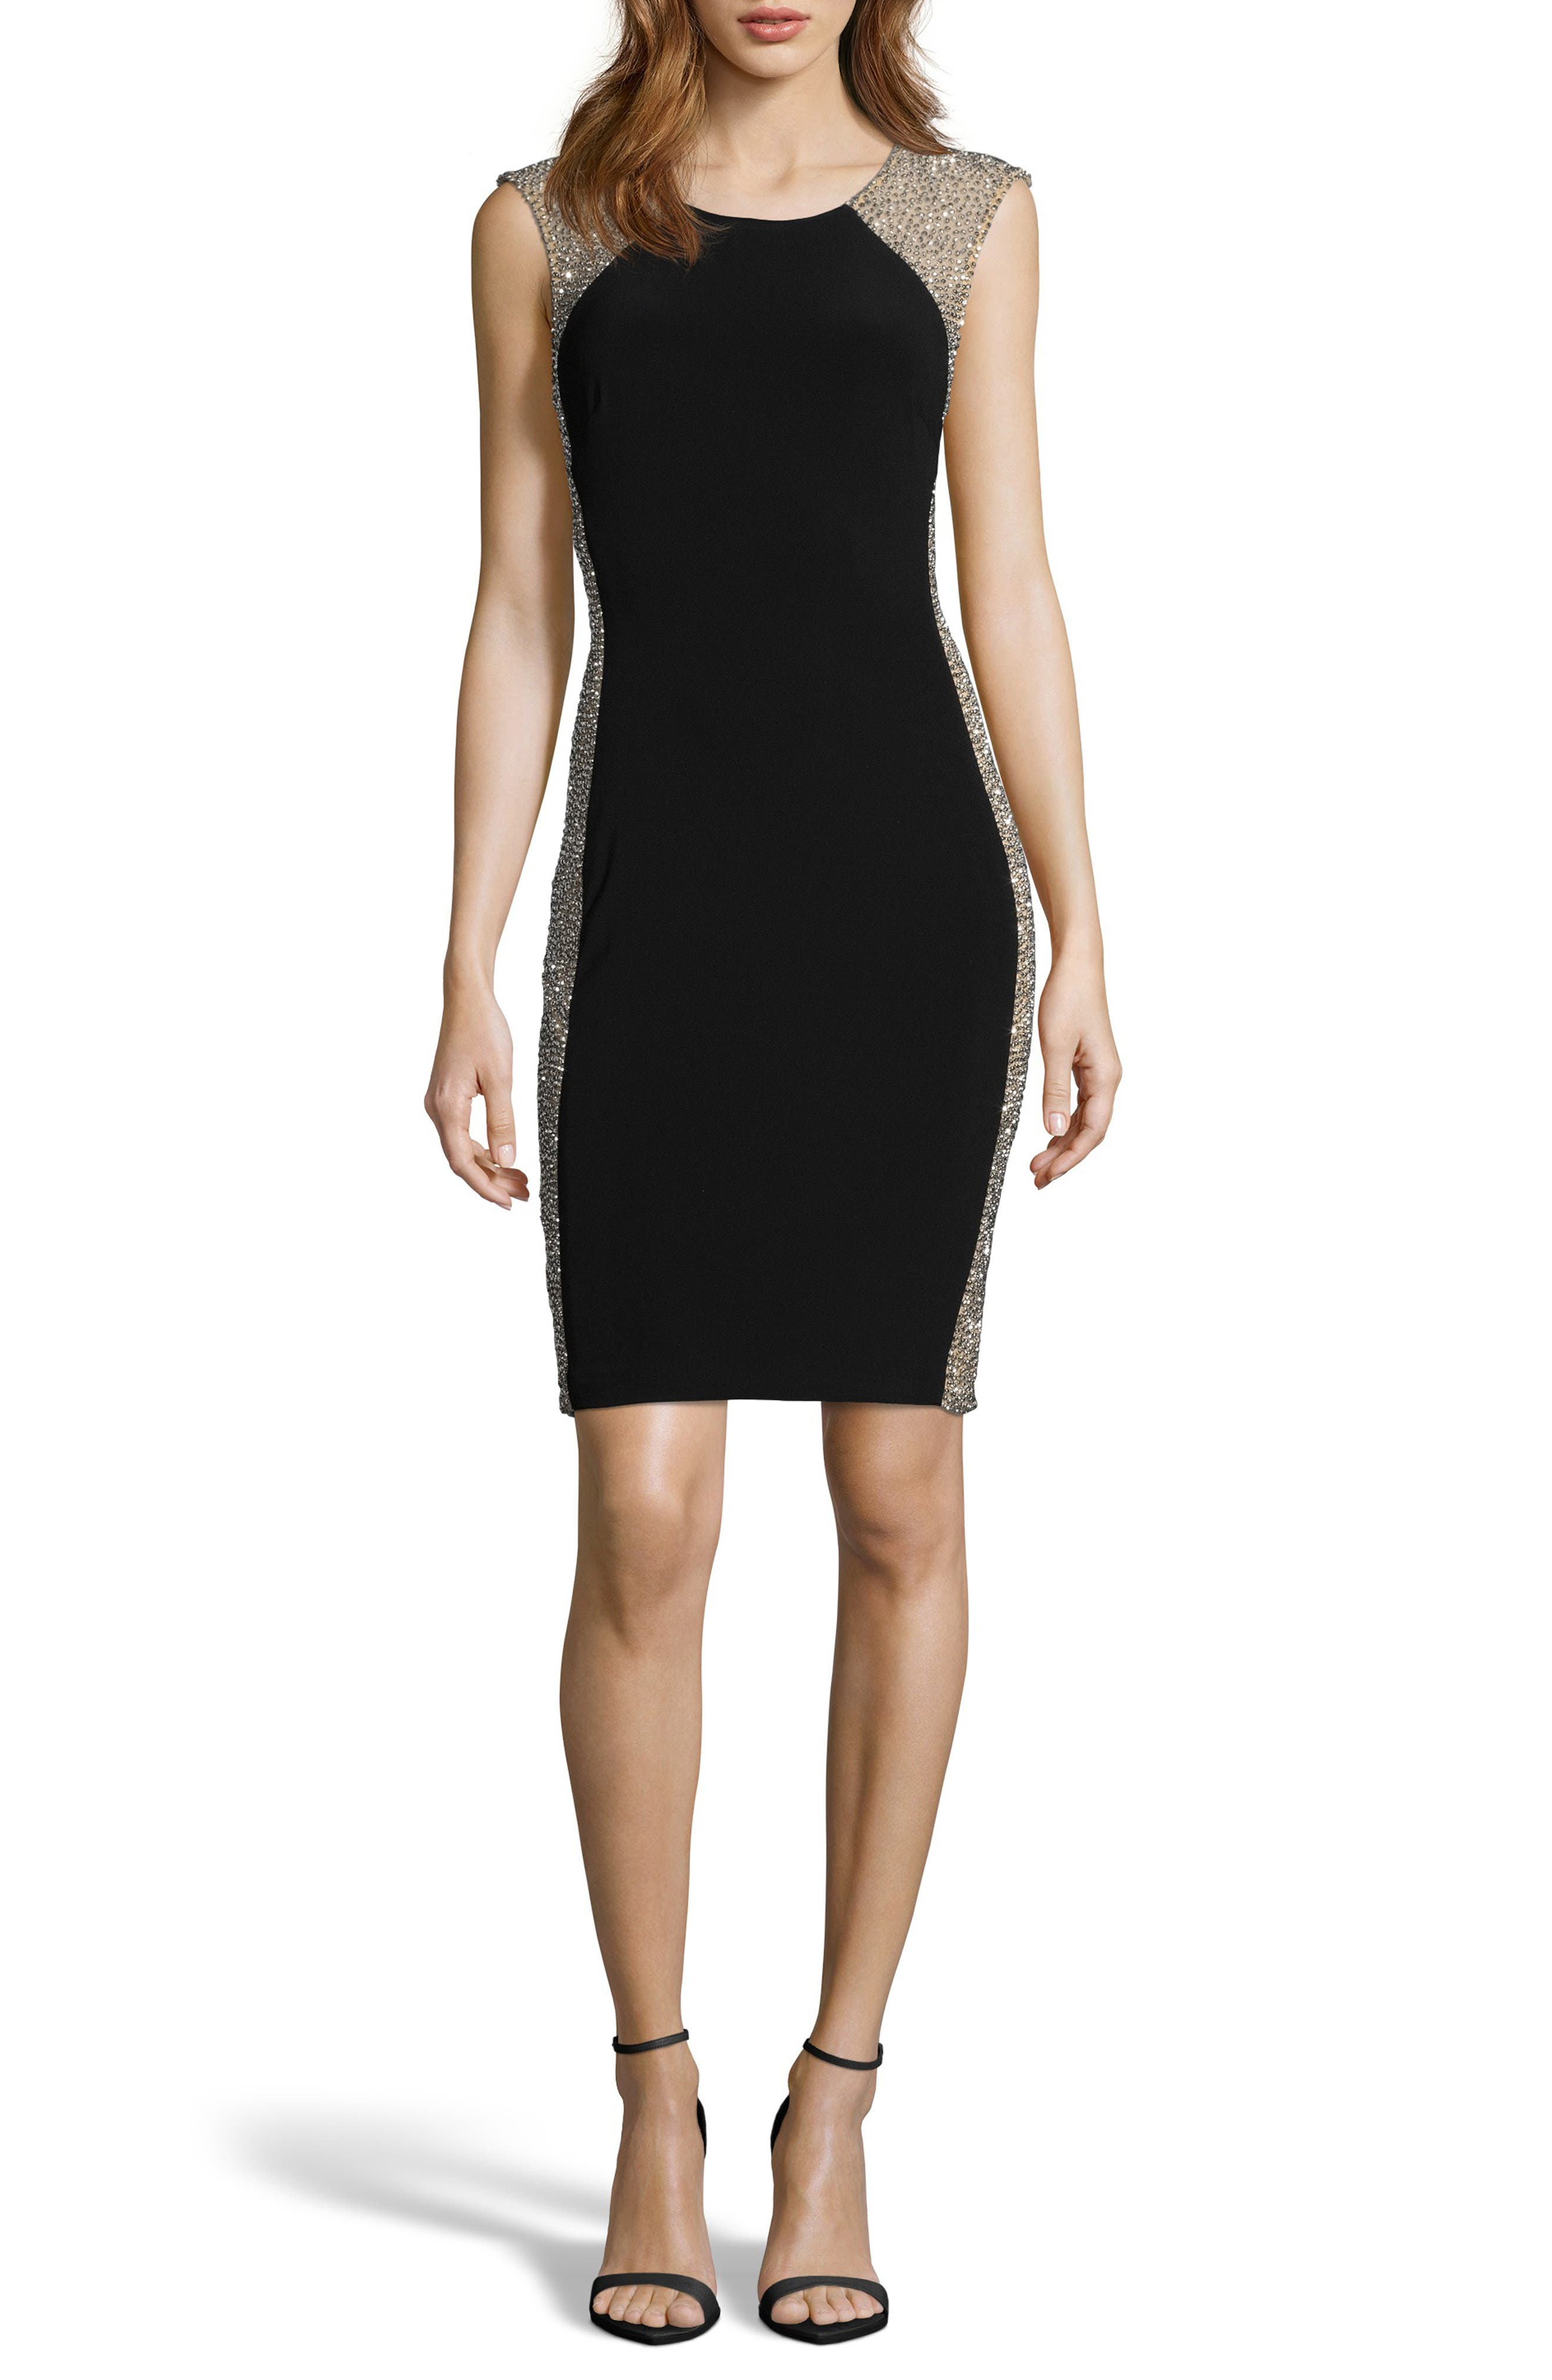 XSCAPE, Beaded Cocktail Dress, Main thumbnail 1, color, BLACK/ NUDE/ SILVER